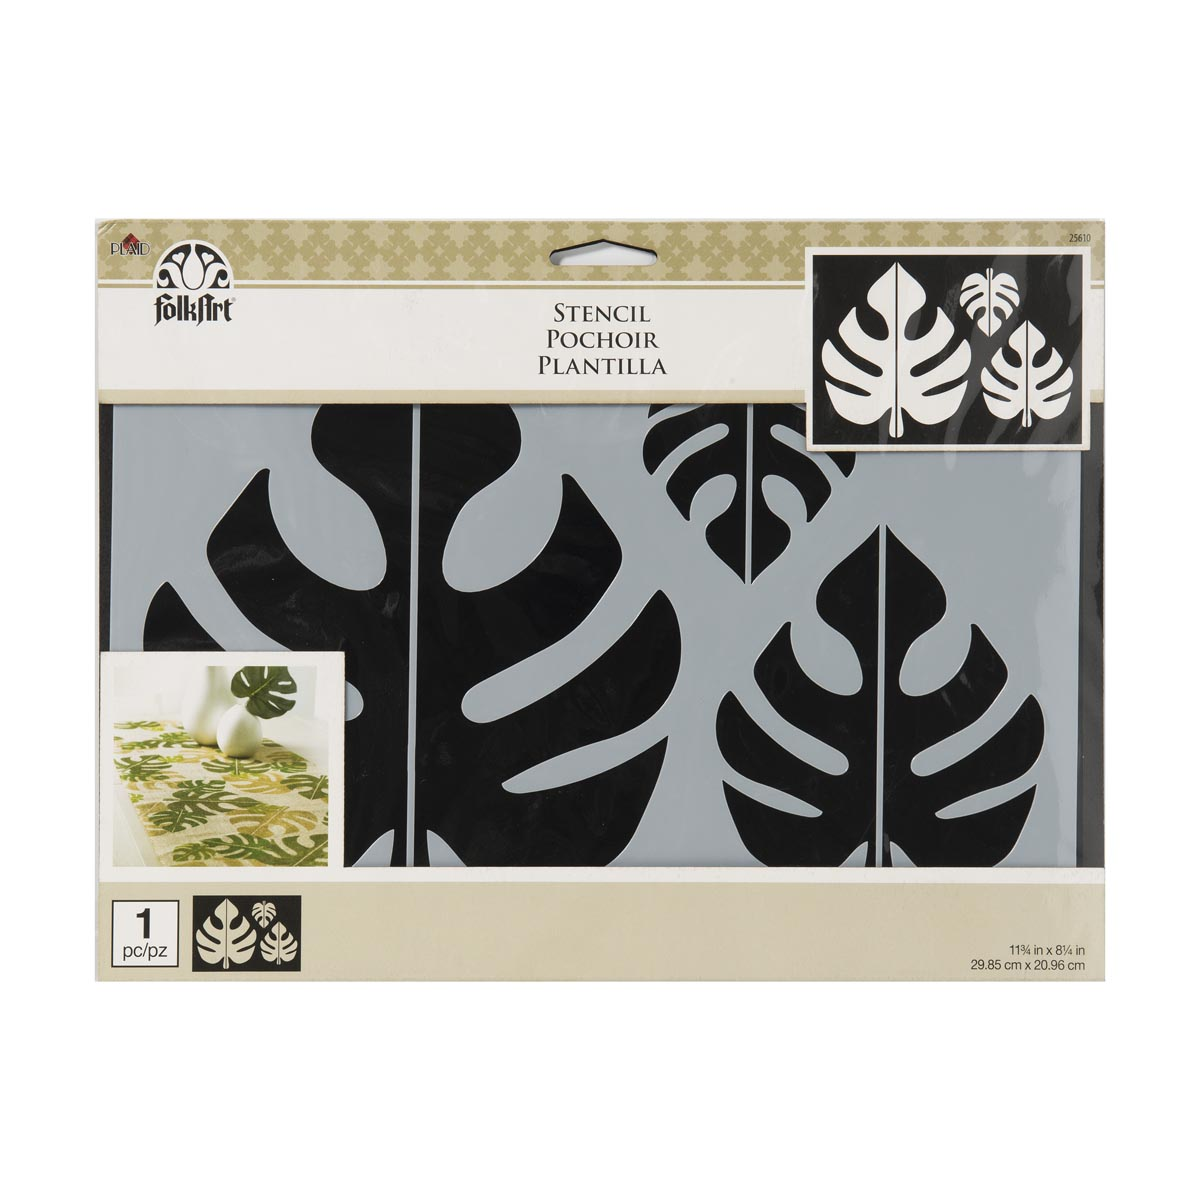 FolkArt ® Painting Stencils - Tropical Leaf Motif